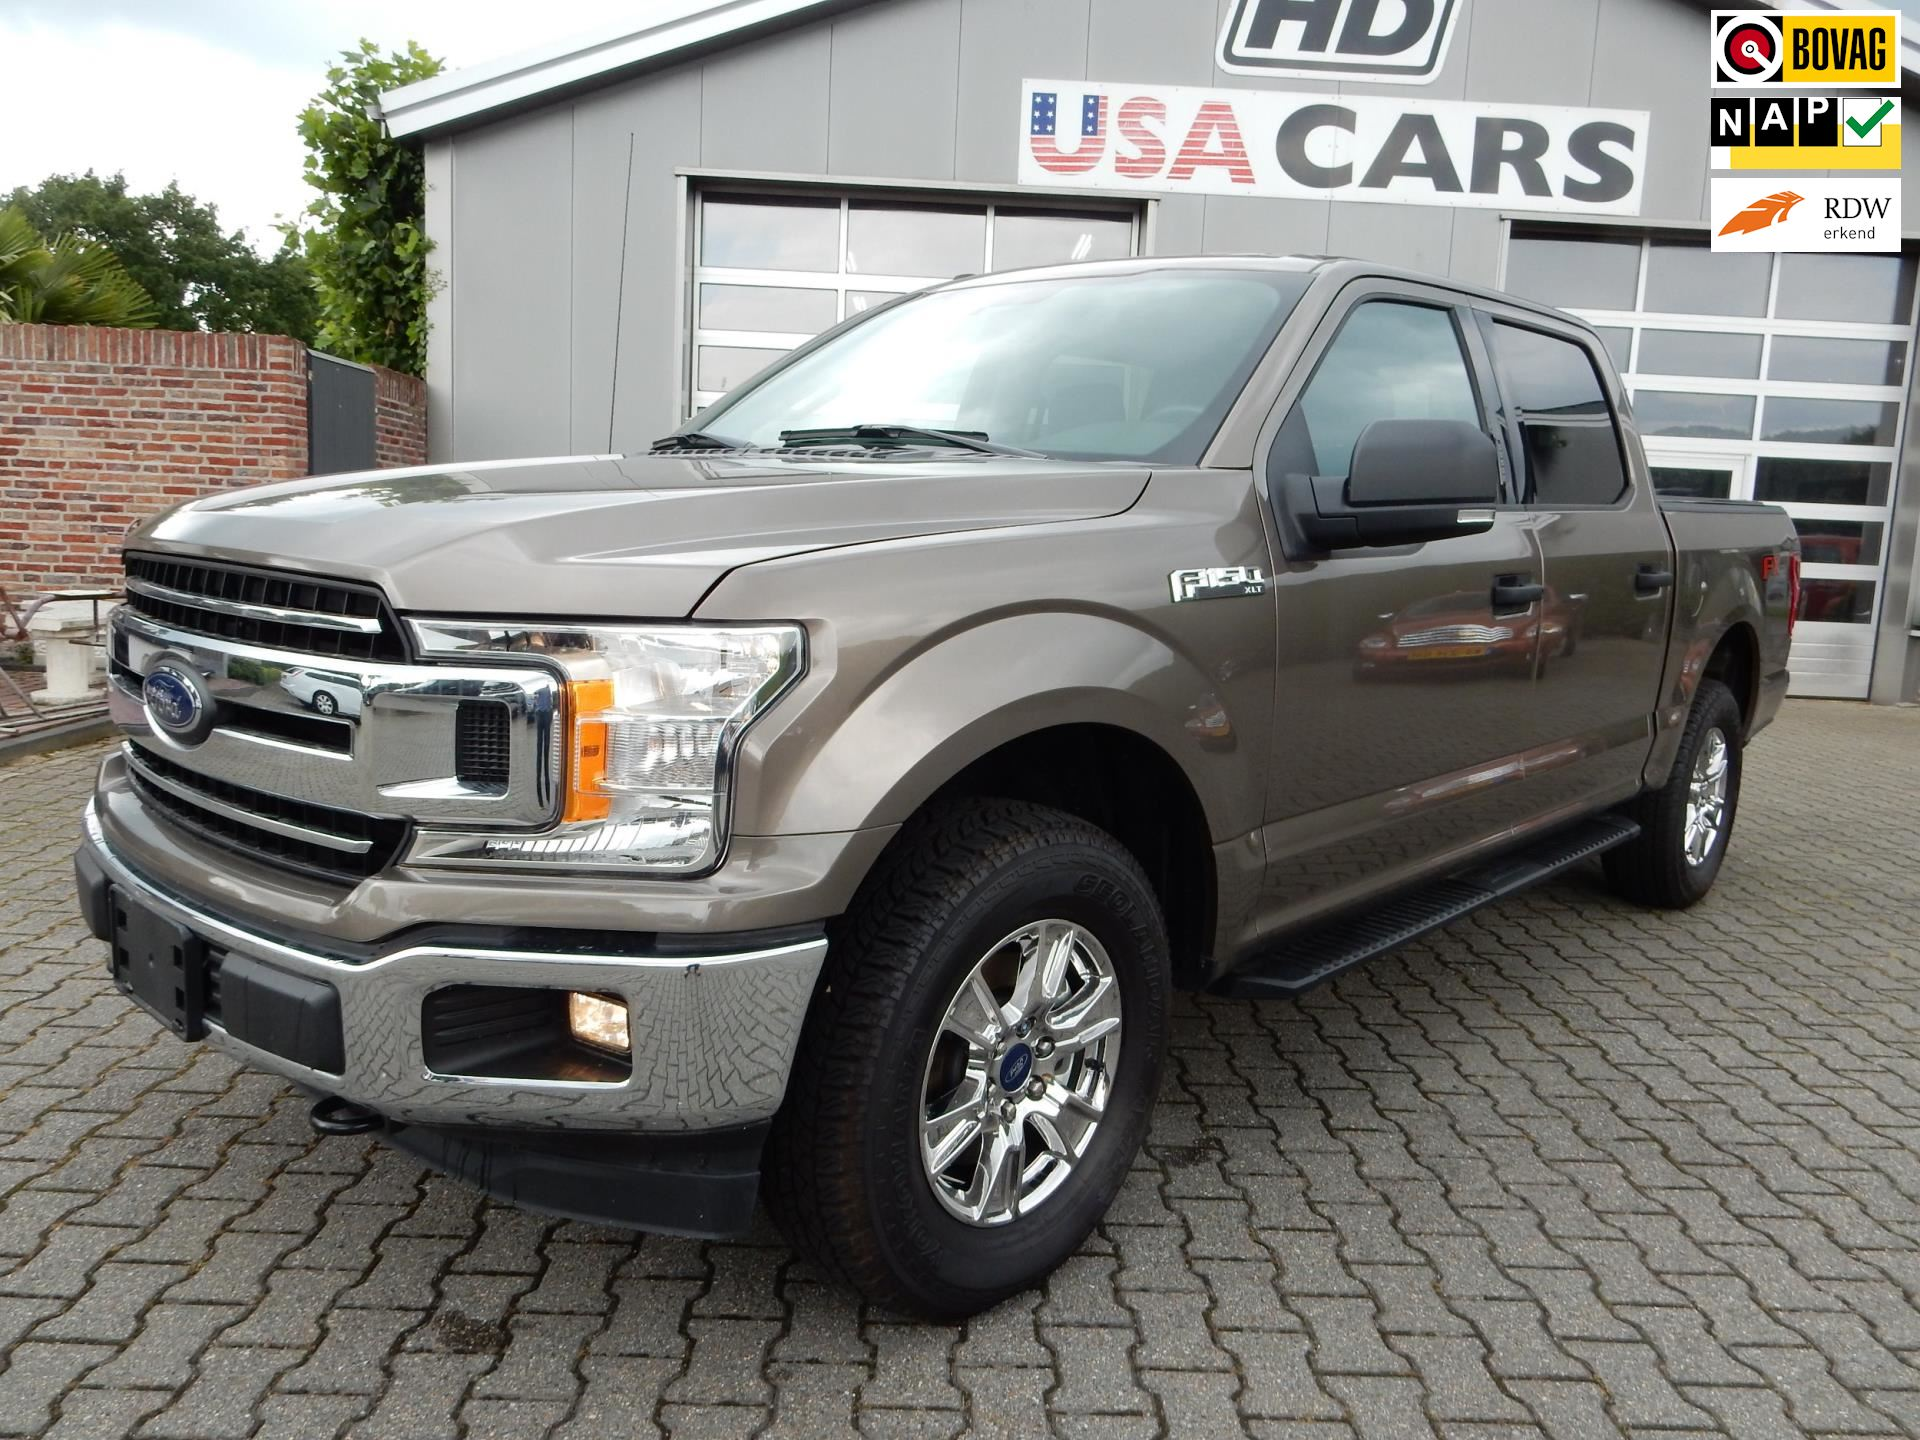 Ford USA 2019 F150 XLT 5.0Ltr V8 4X4 occasion - HD USA CARS